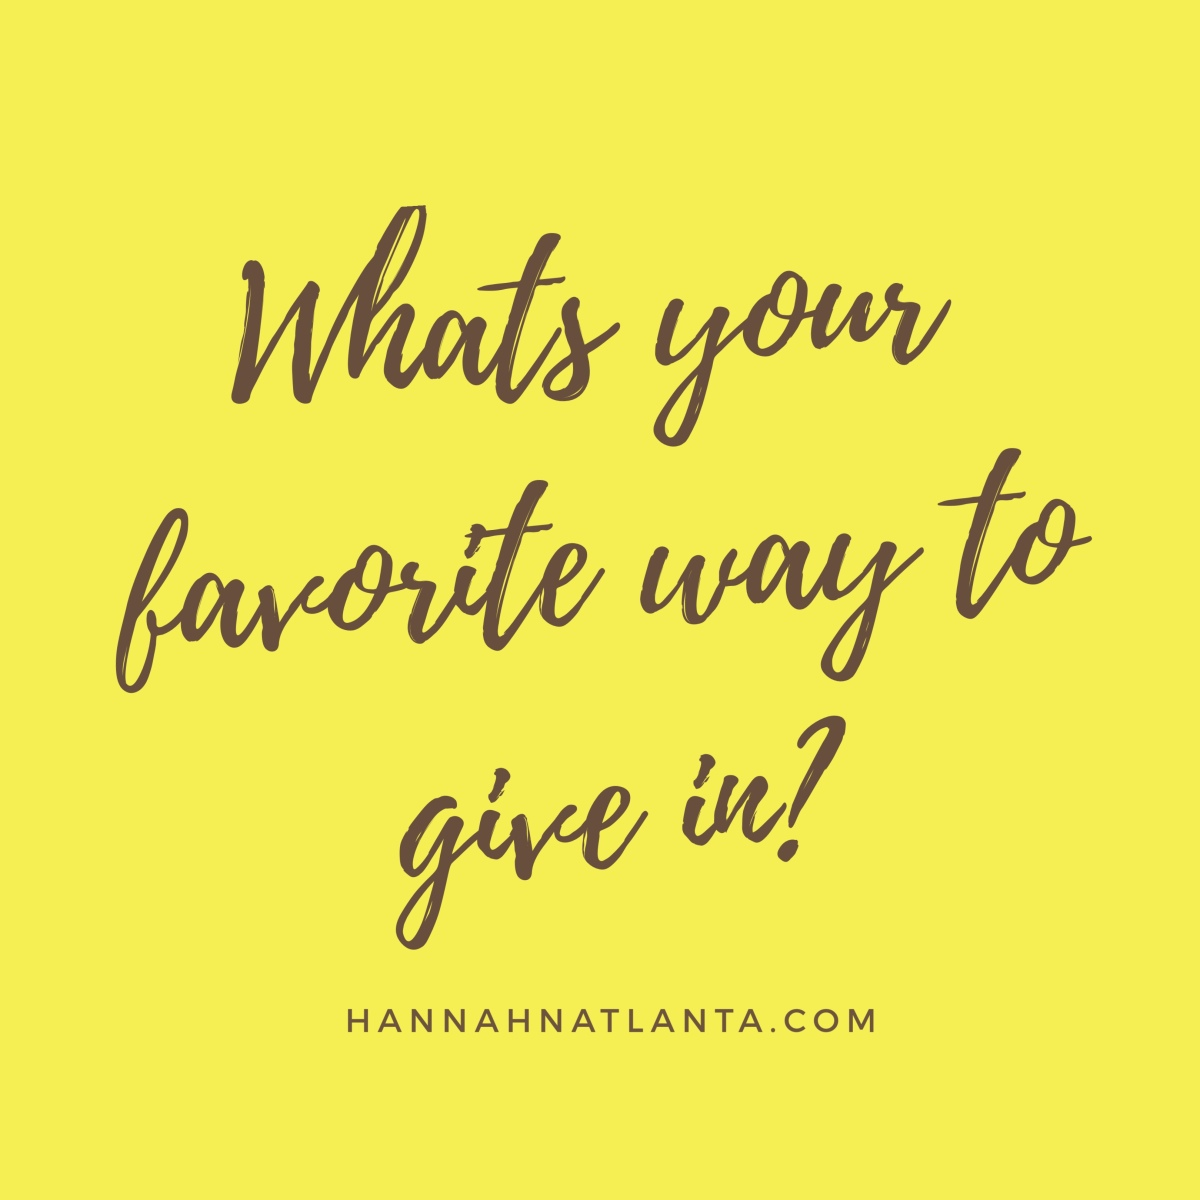 What's your favorite way to givein?